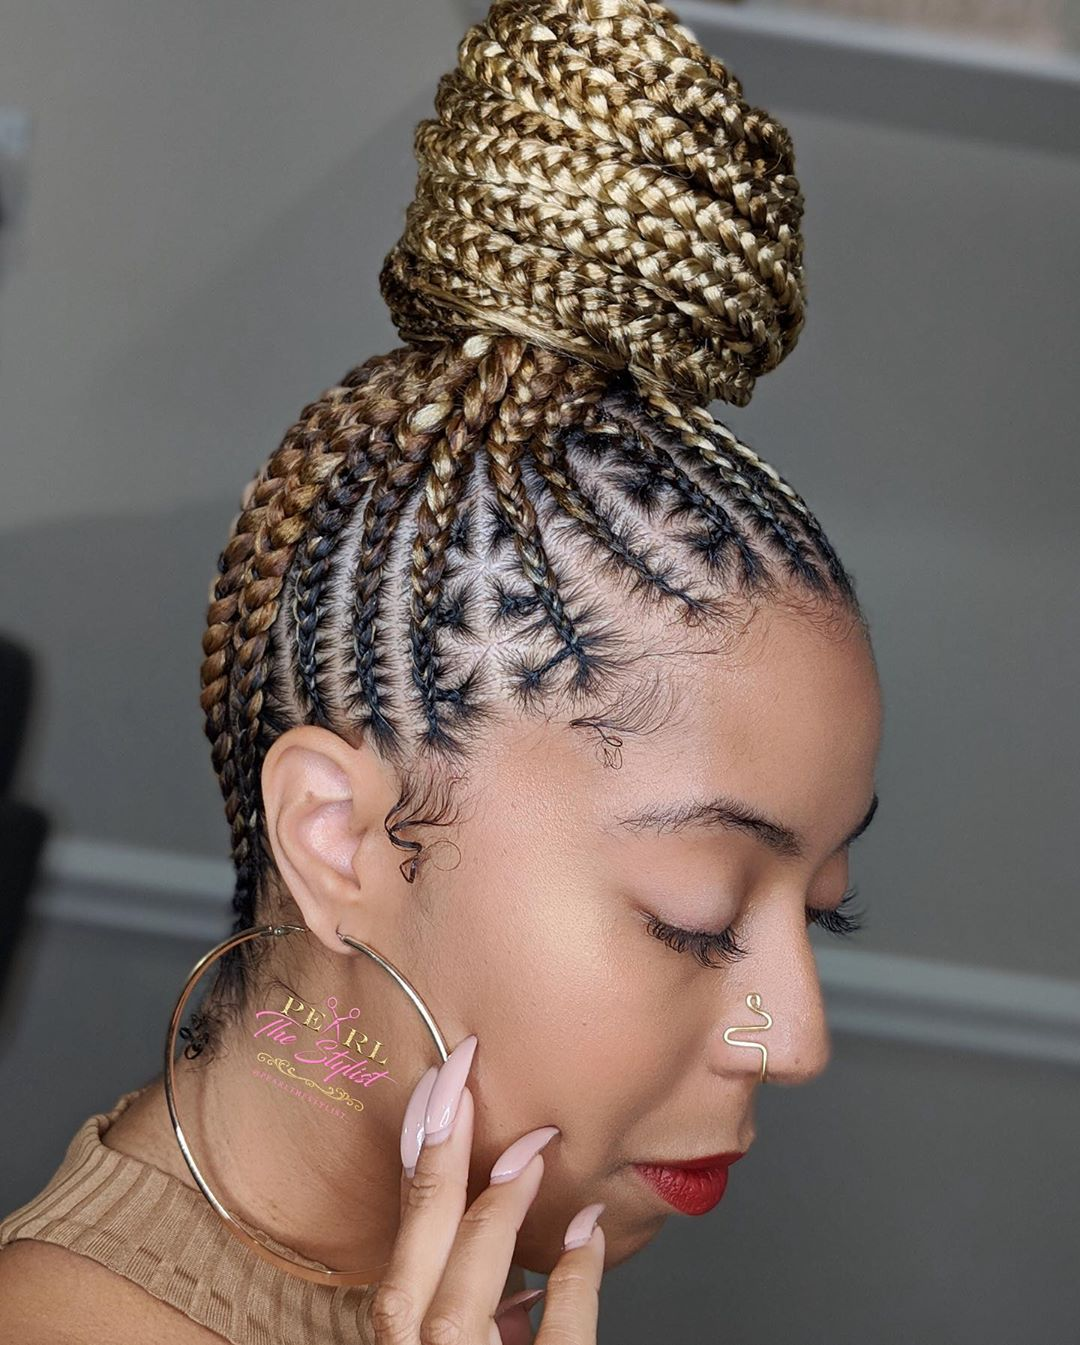 Groovy Cute Braided Hairstyles 2019 Unique Styles To Make You Stand Out Schematic Wiring Diagrams Amerangerunnerswayorg